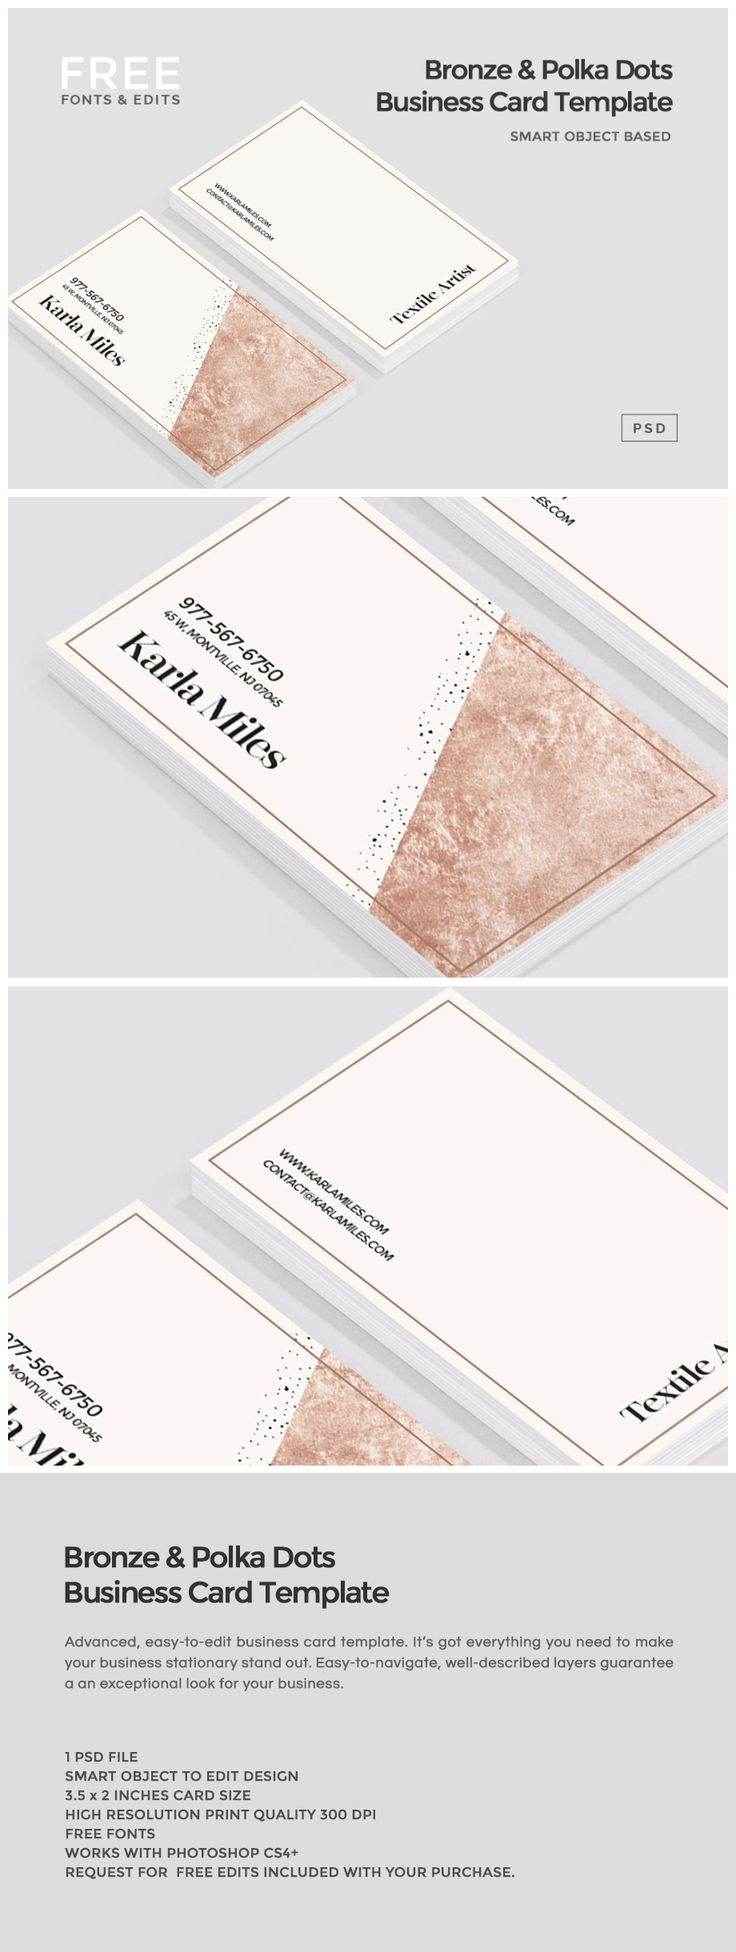 872 best Business | Card | Design images on Pinterest | Brand ...